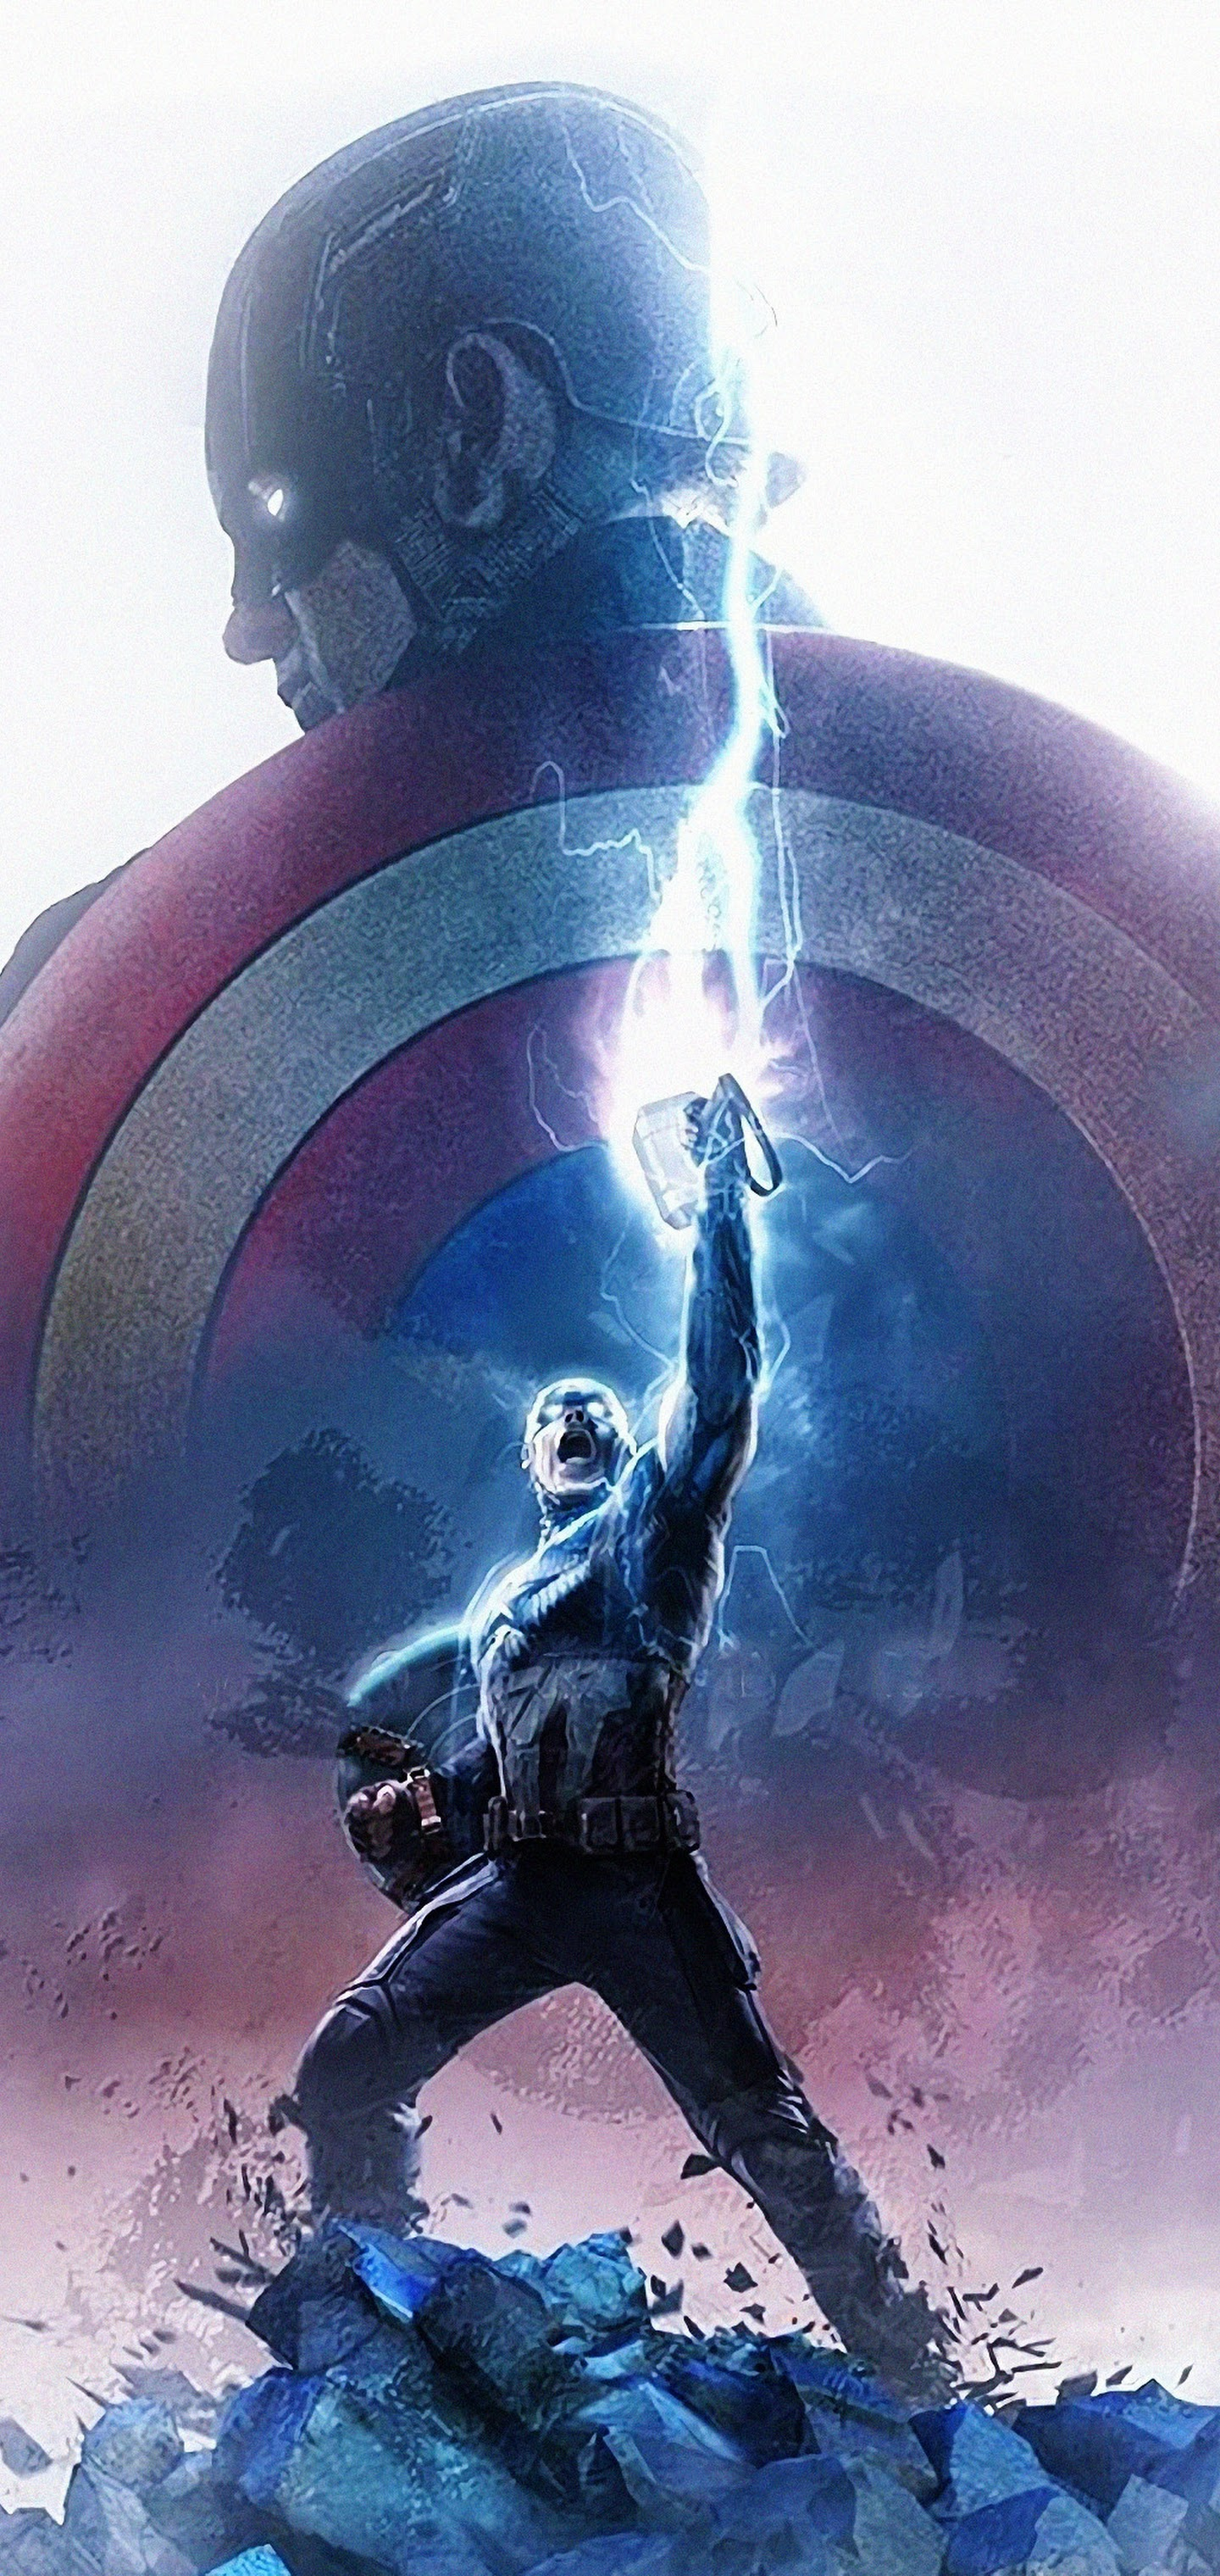 Captain America 4k Wallpaper Posted By Samantha Peltier